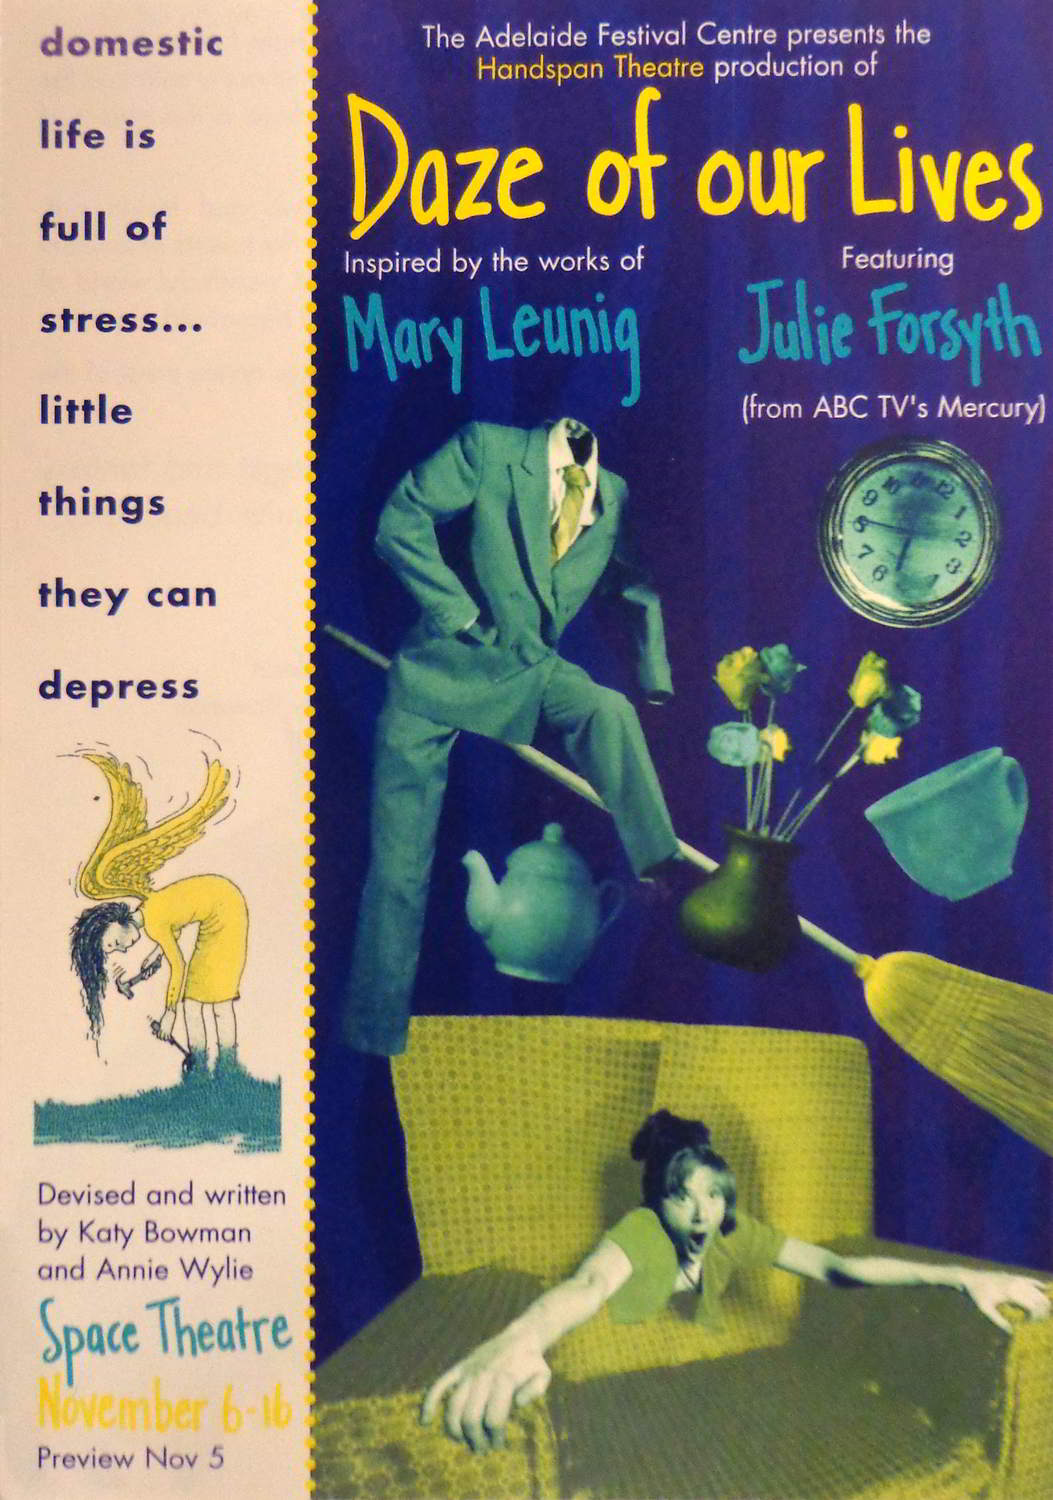 poster with blue and pink panels showing text and hand drawn cartoon images from the production in yellow and green